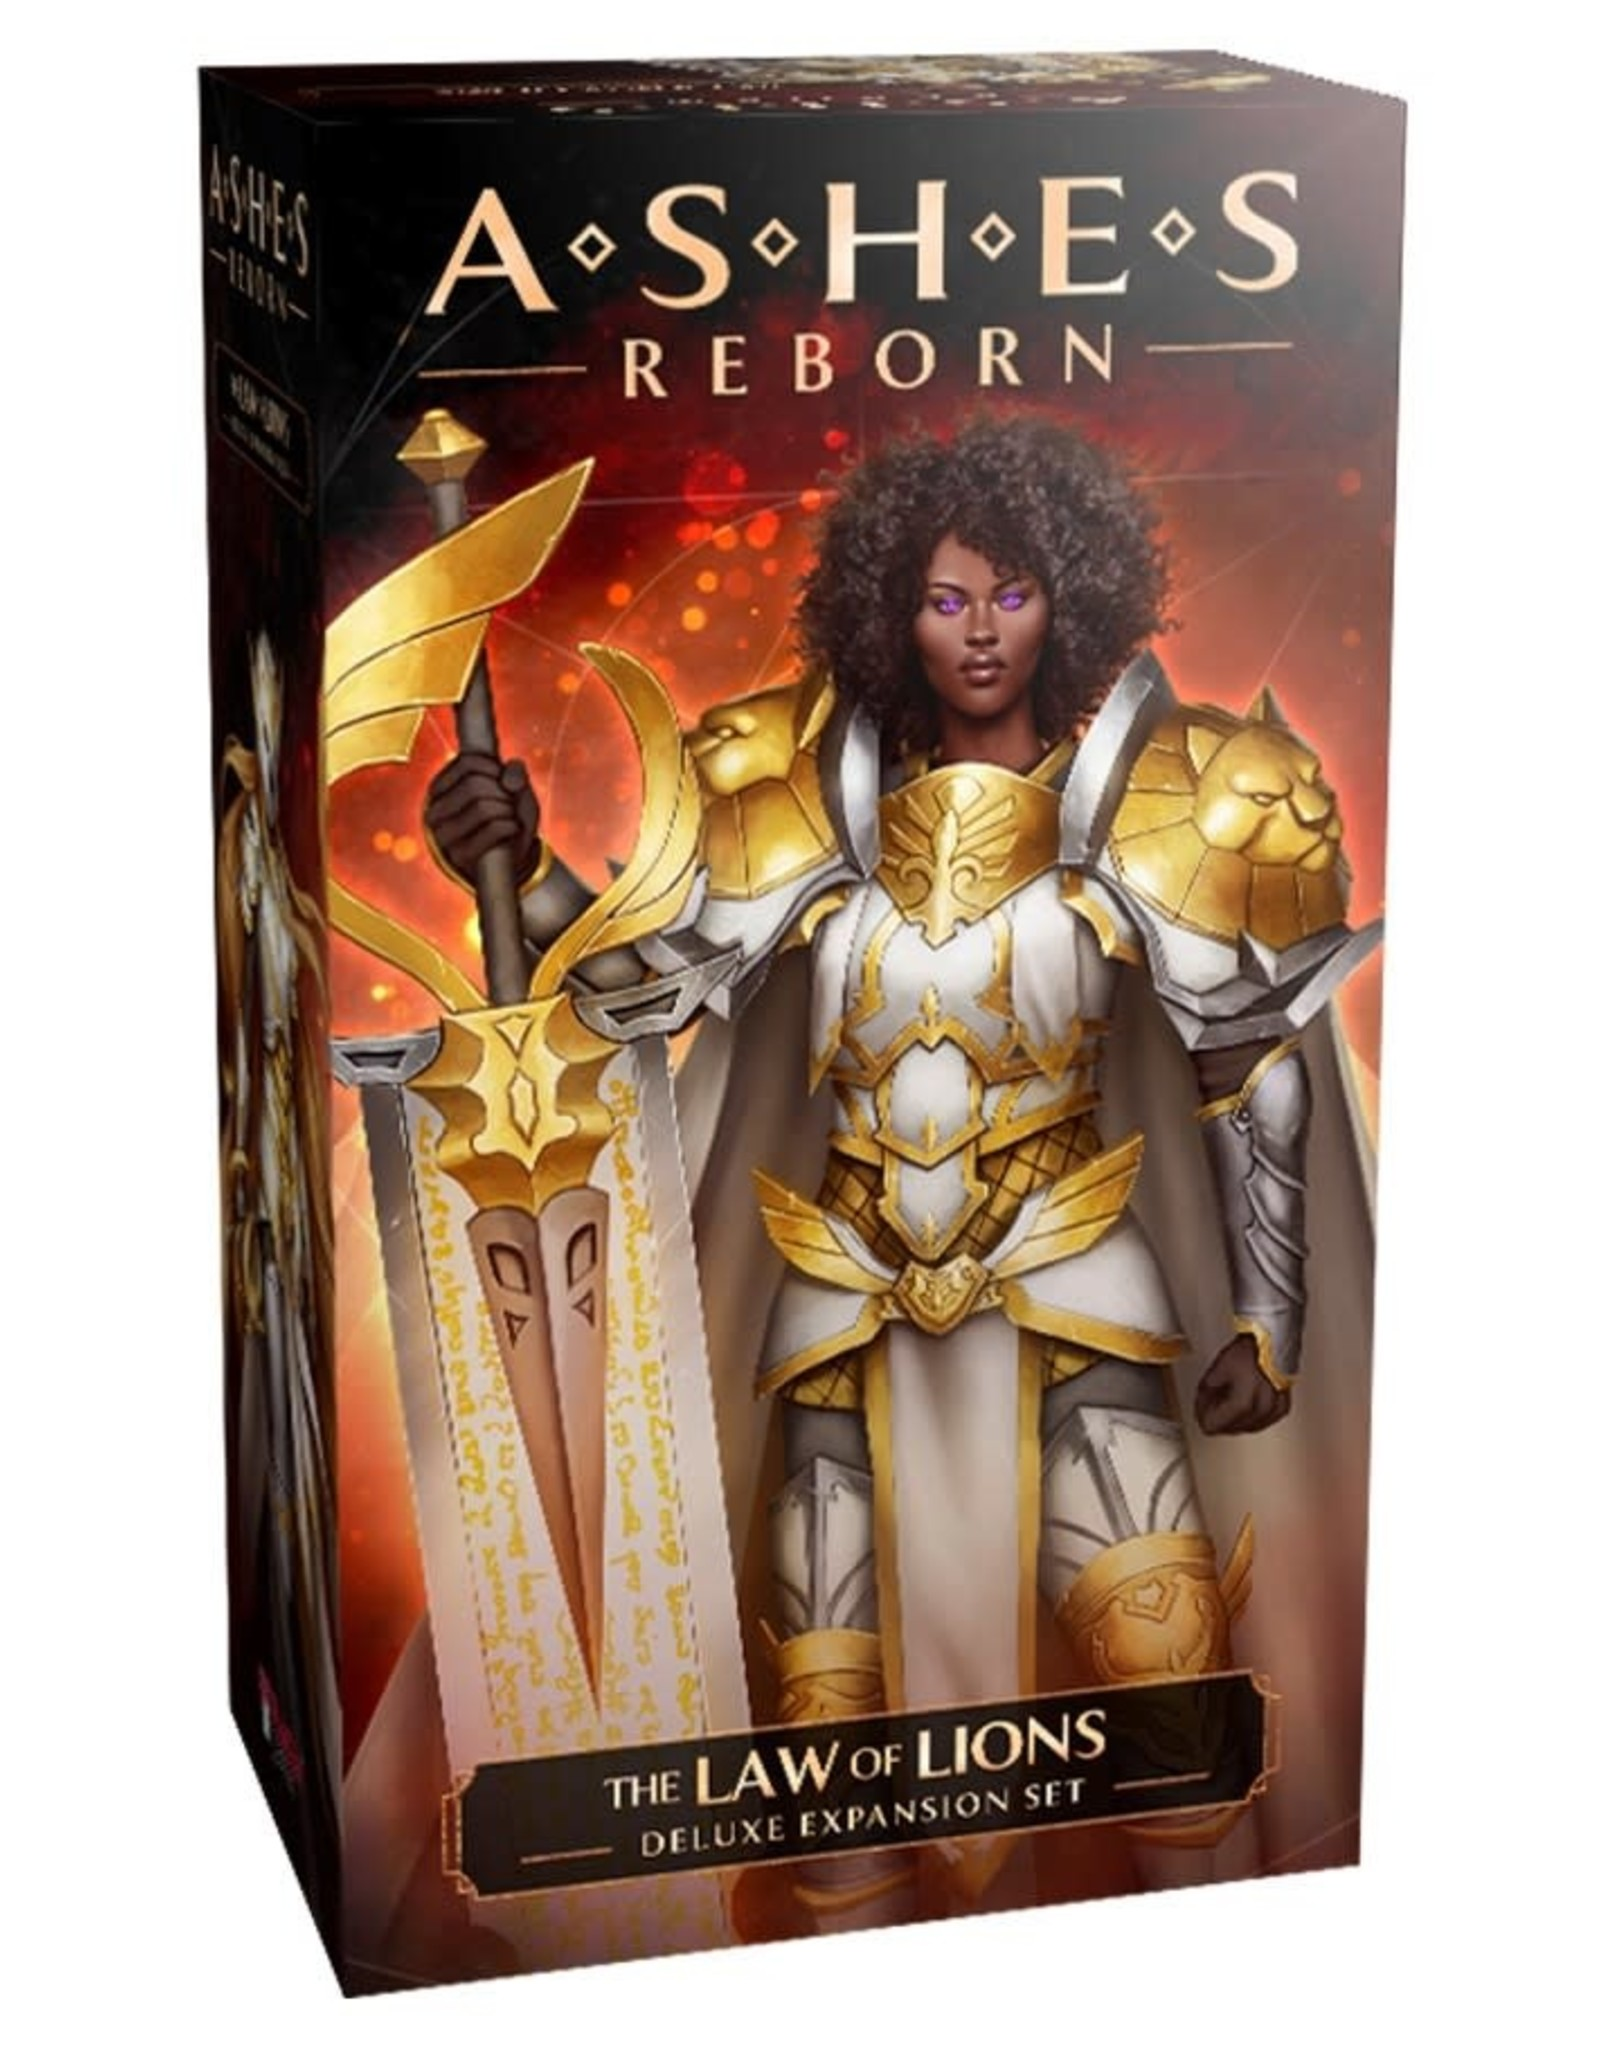 Plaid Hat Games Ashes Reborn: The Laws of Lions Deluxe Expansion